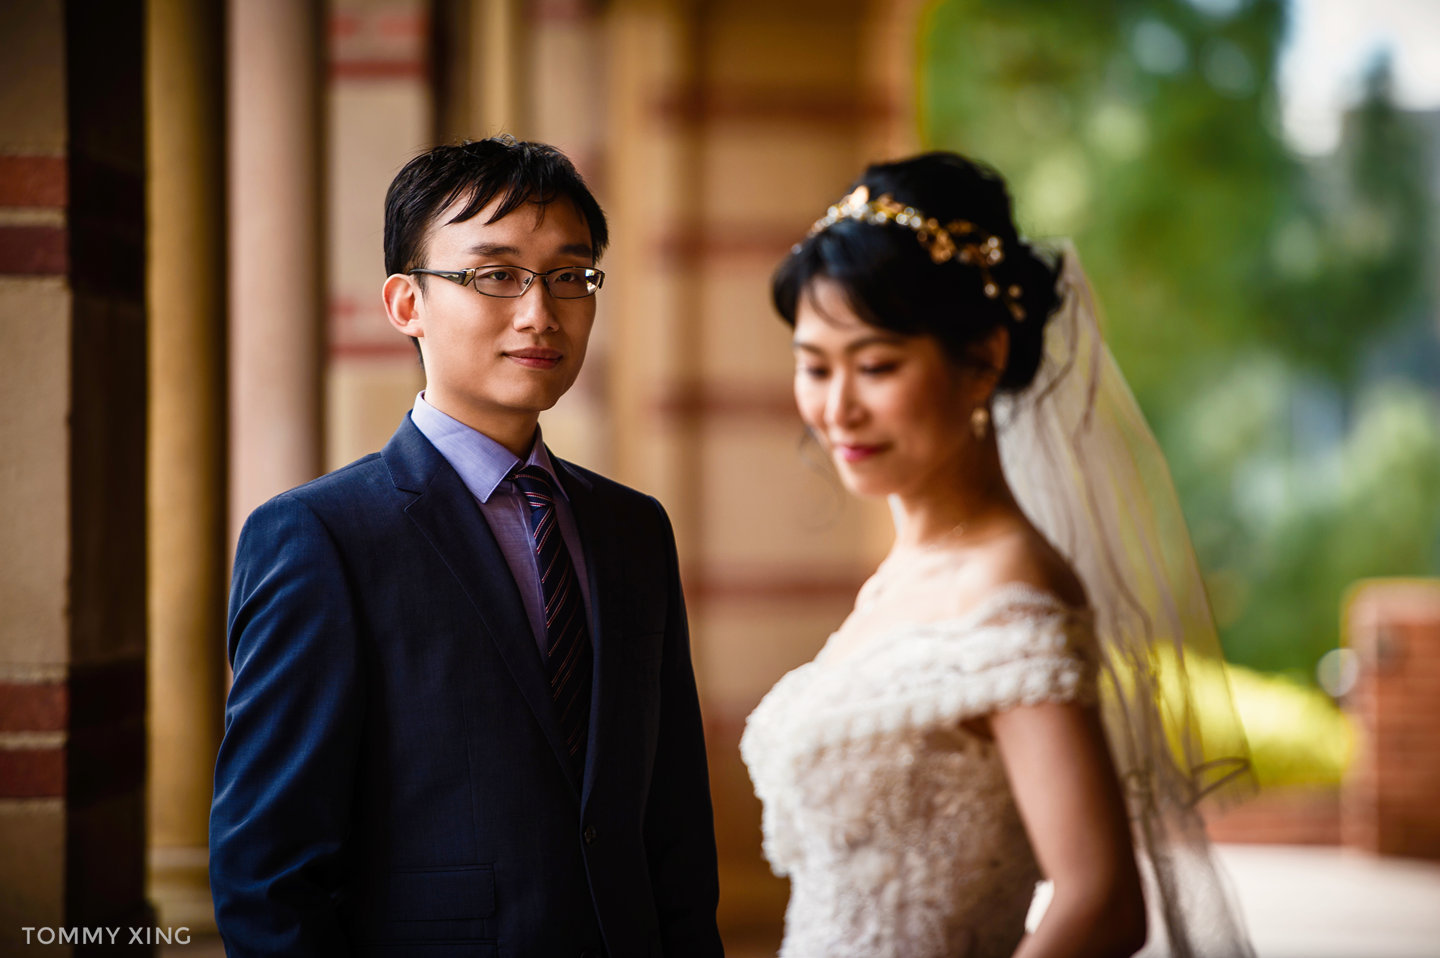 洛杉矶旧金山婚礼婚纱照摄影师 Tommy Xing Los Angeles wedding photographer 06.jpg